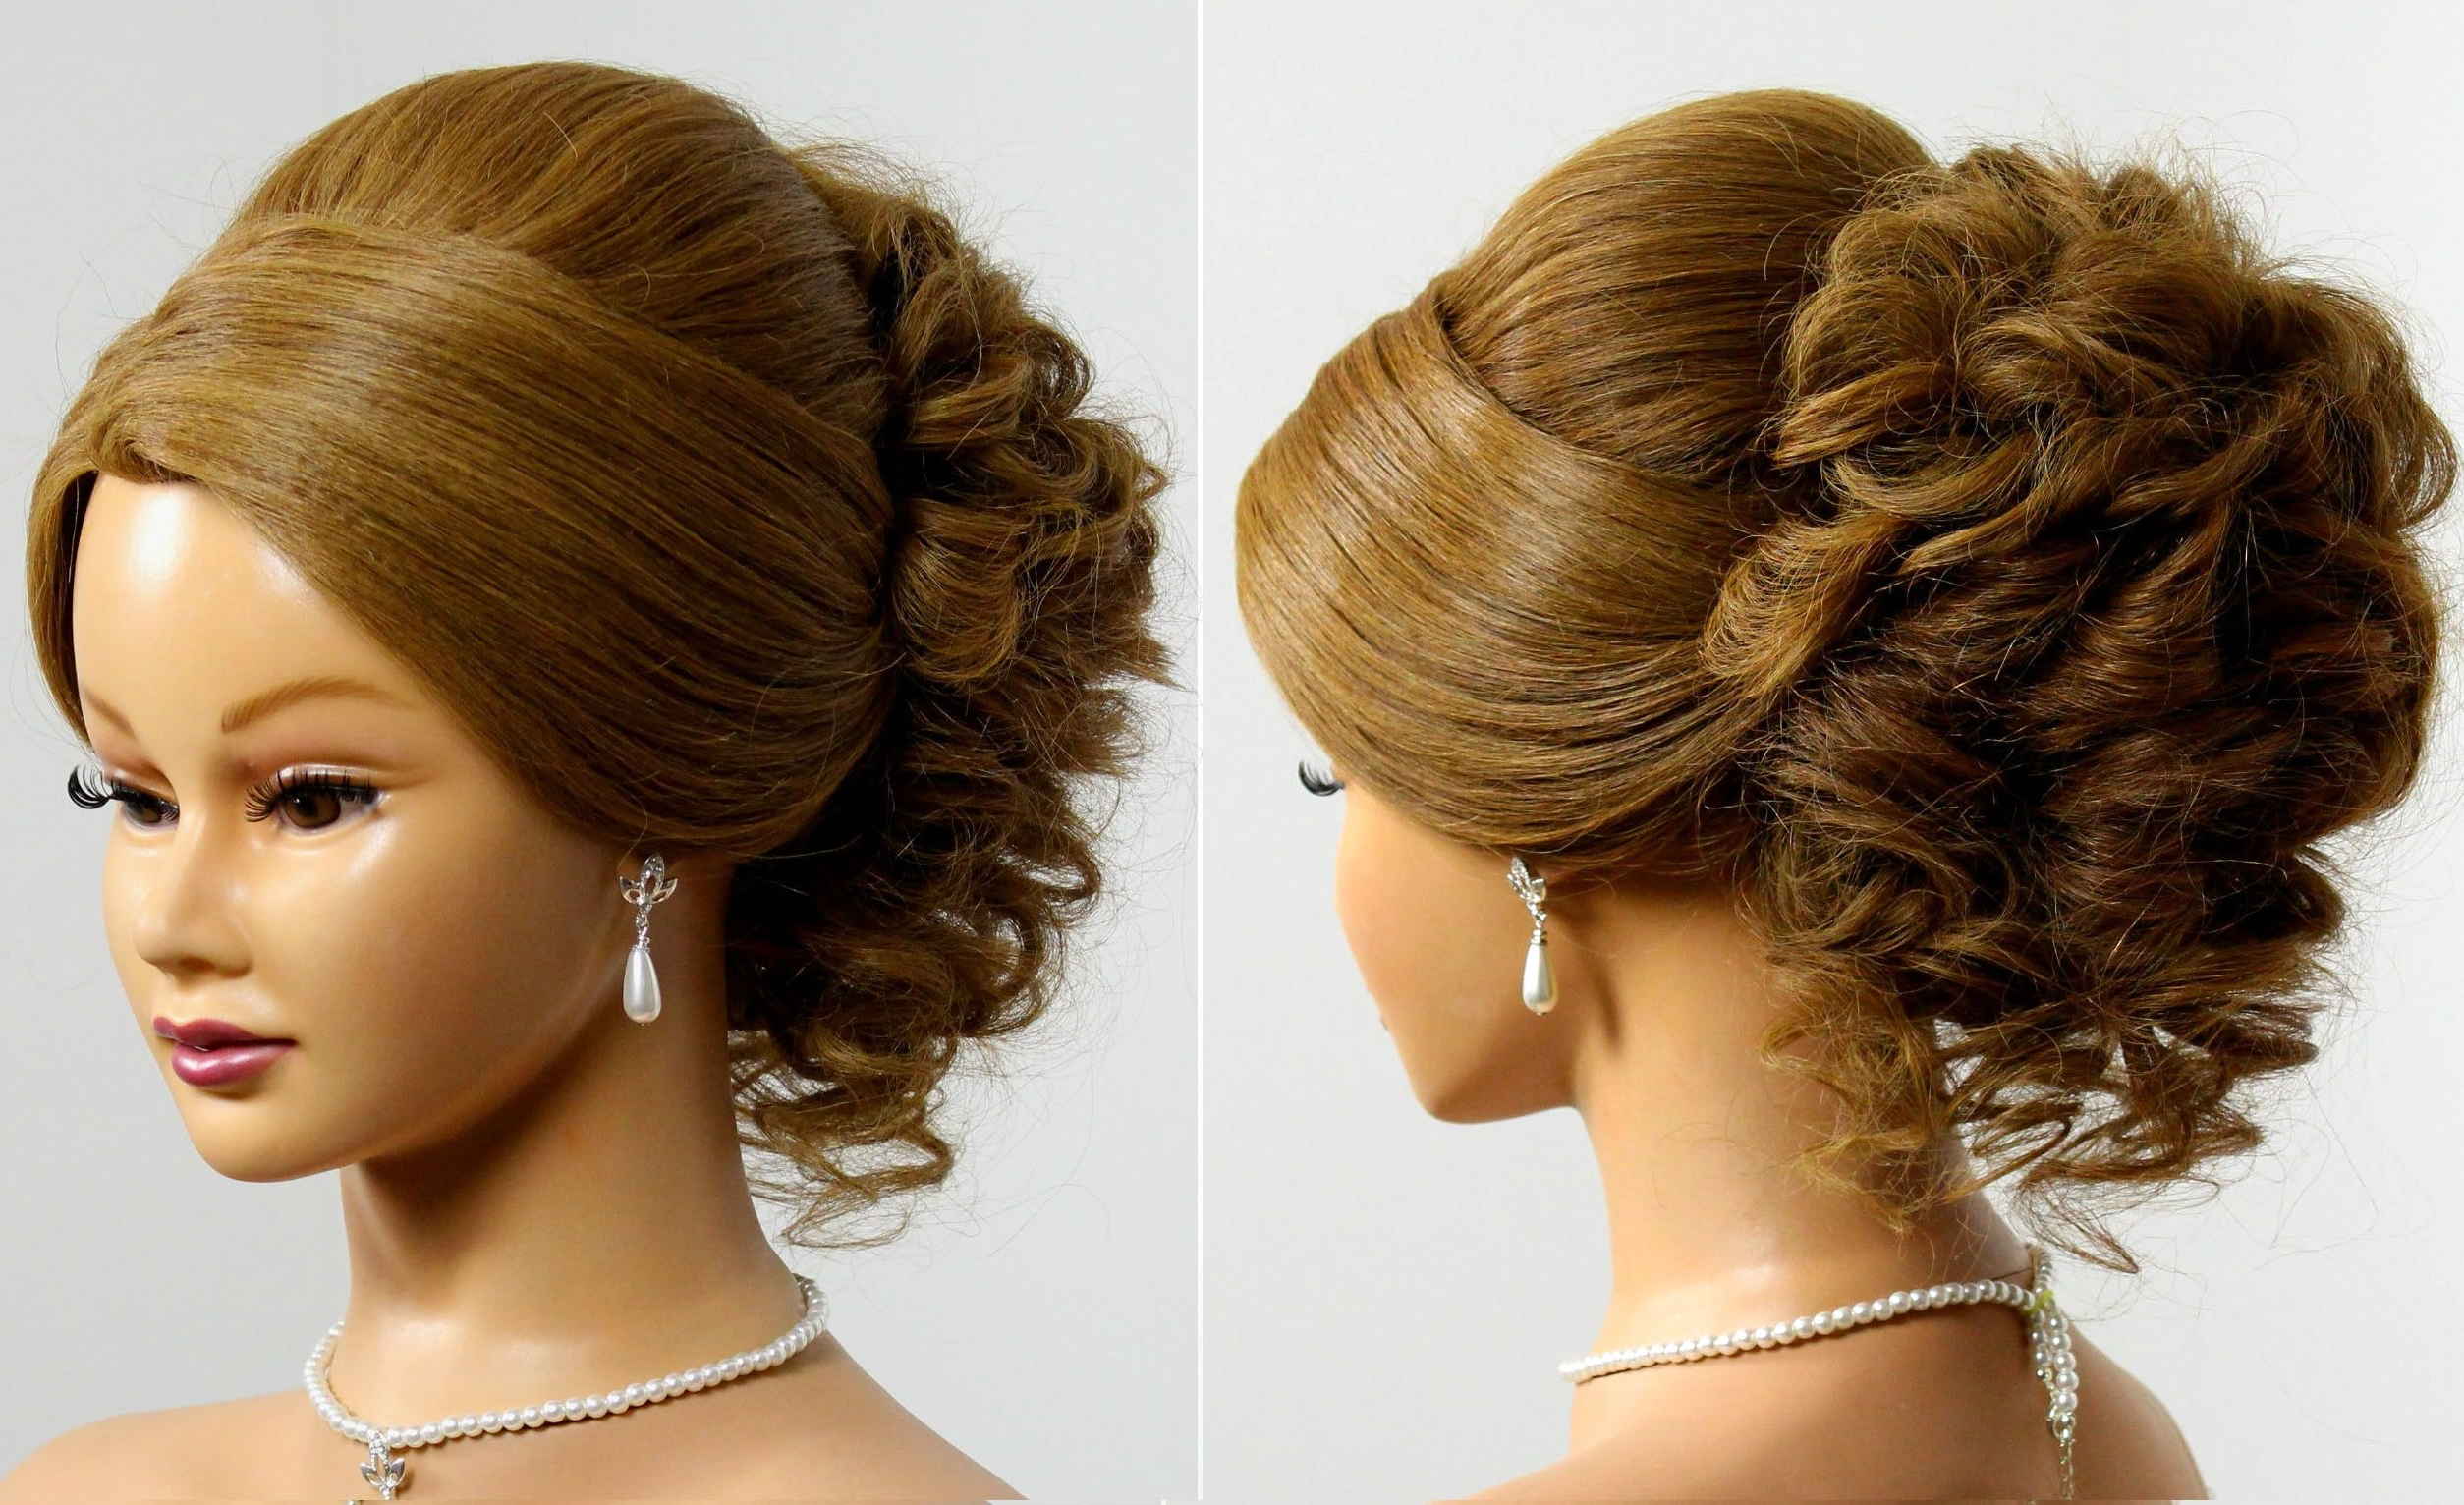 Hairstyles For Medium Hair For Prom – Hairstyle For Women & Man Regarding Most Recent Medium Hairstyles For Prom (View 6 of 20)